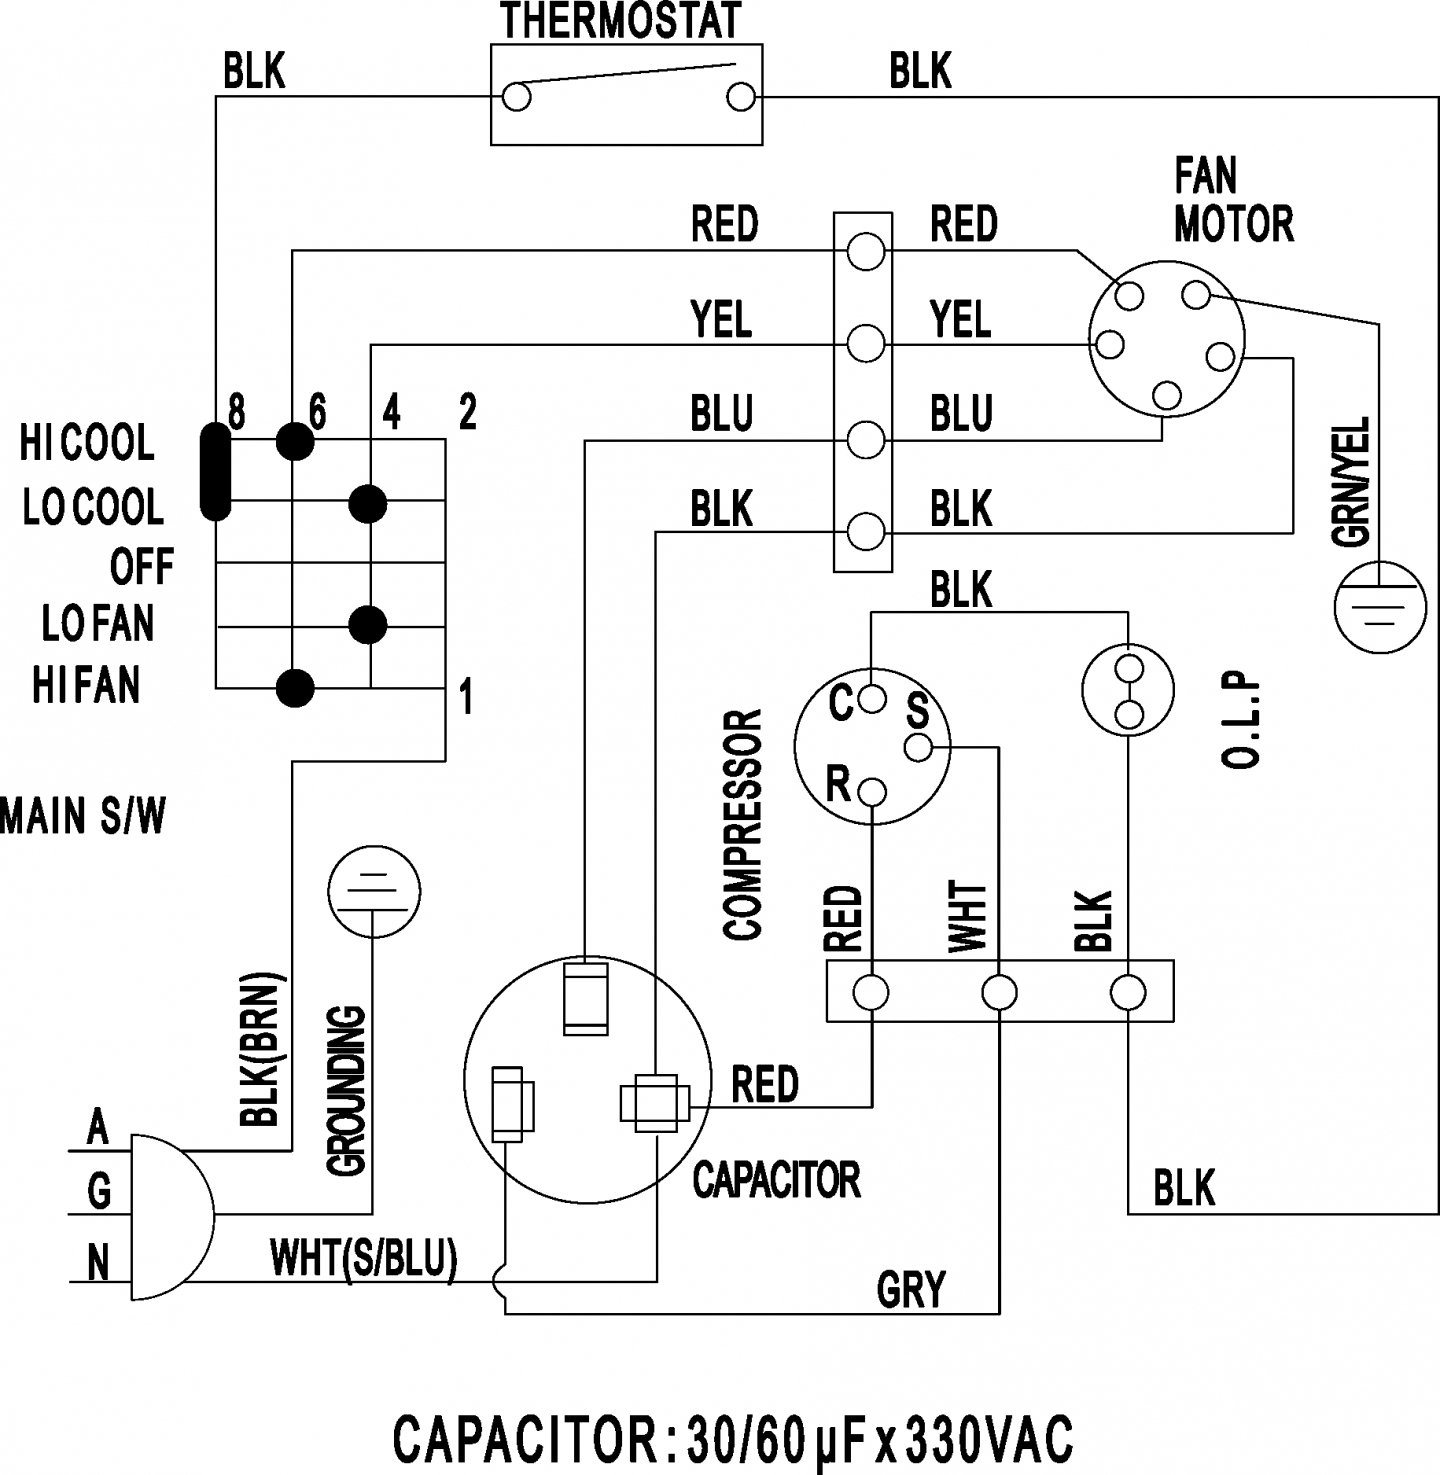 wiring diagram for hvac systems